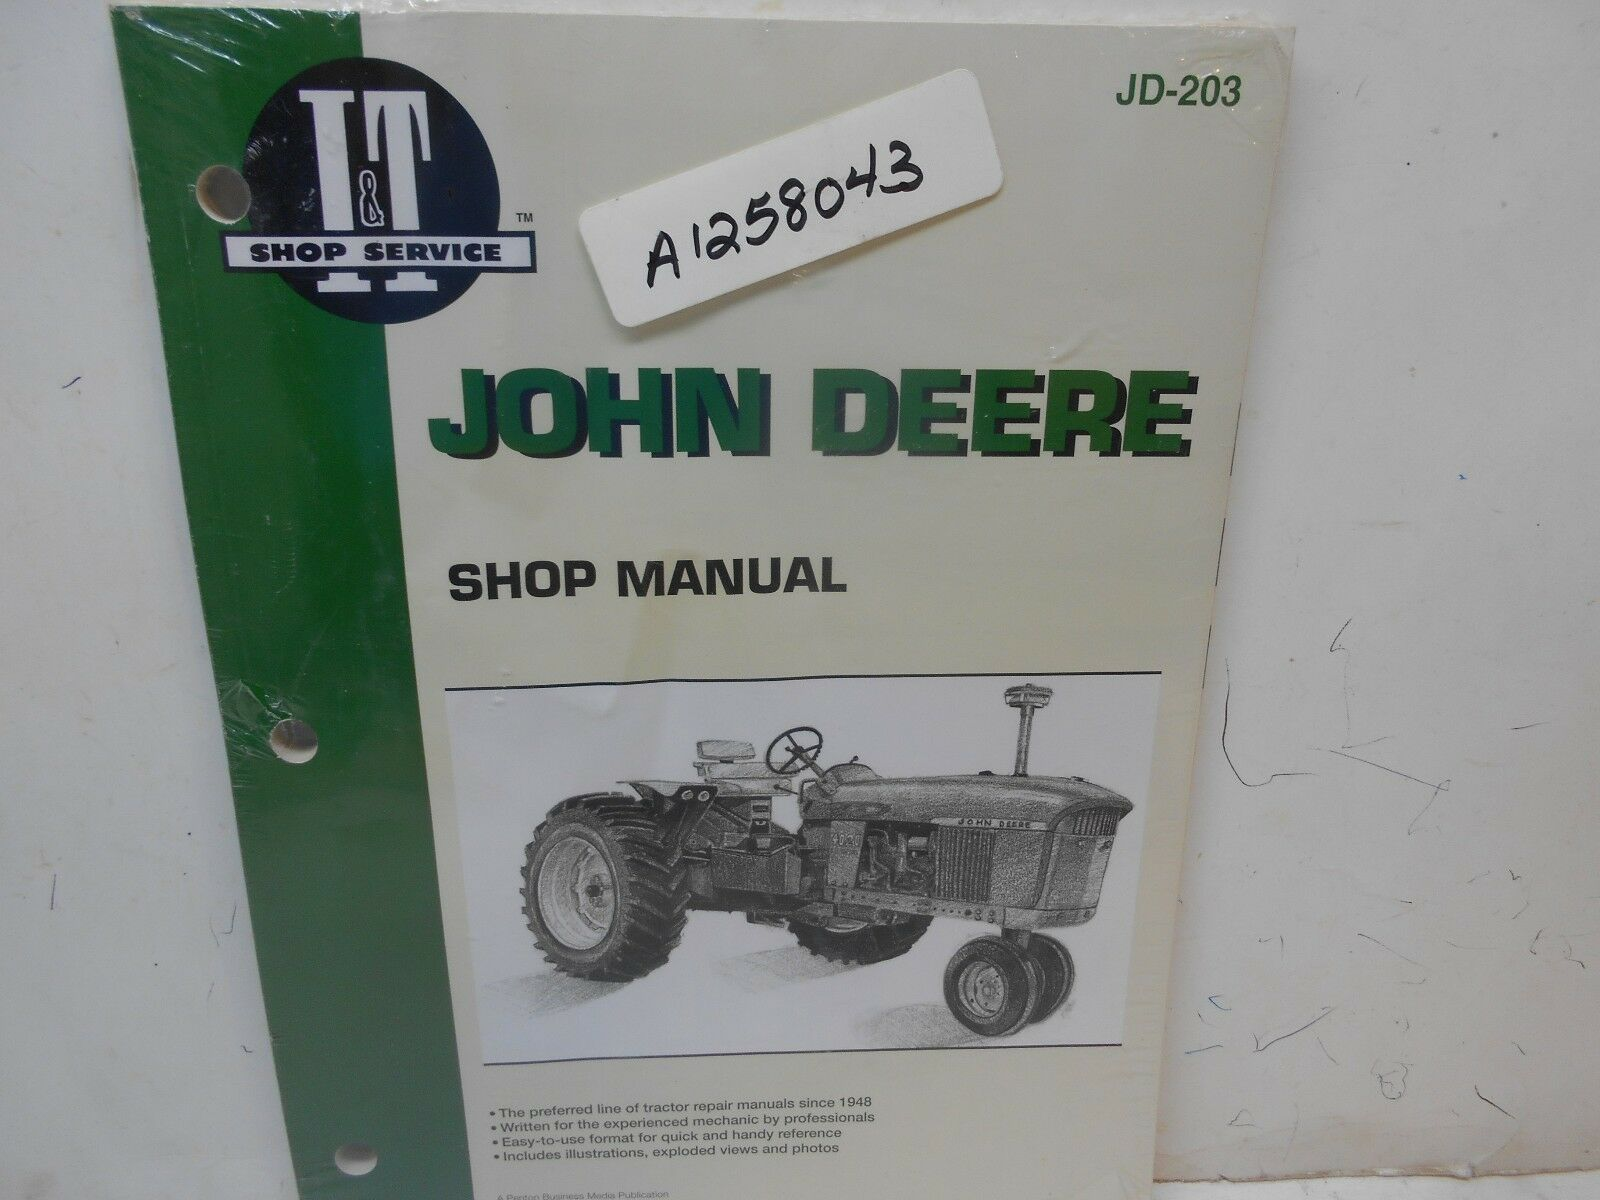 new IT John Deere shop manual for JD-203 tractor manuals 1 of 2Only 2  available See More